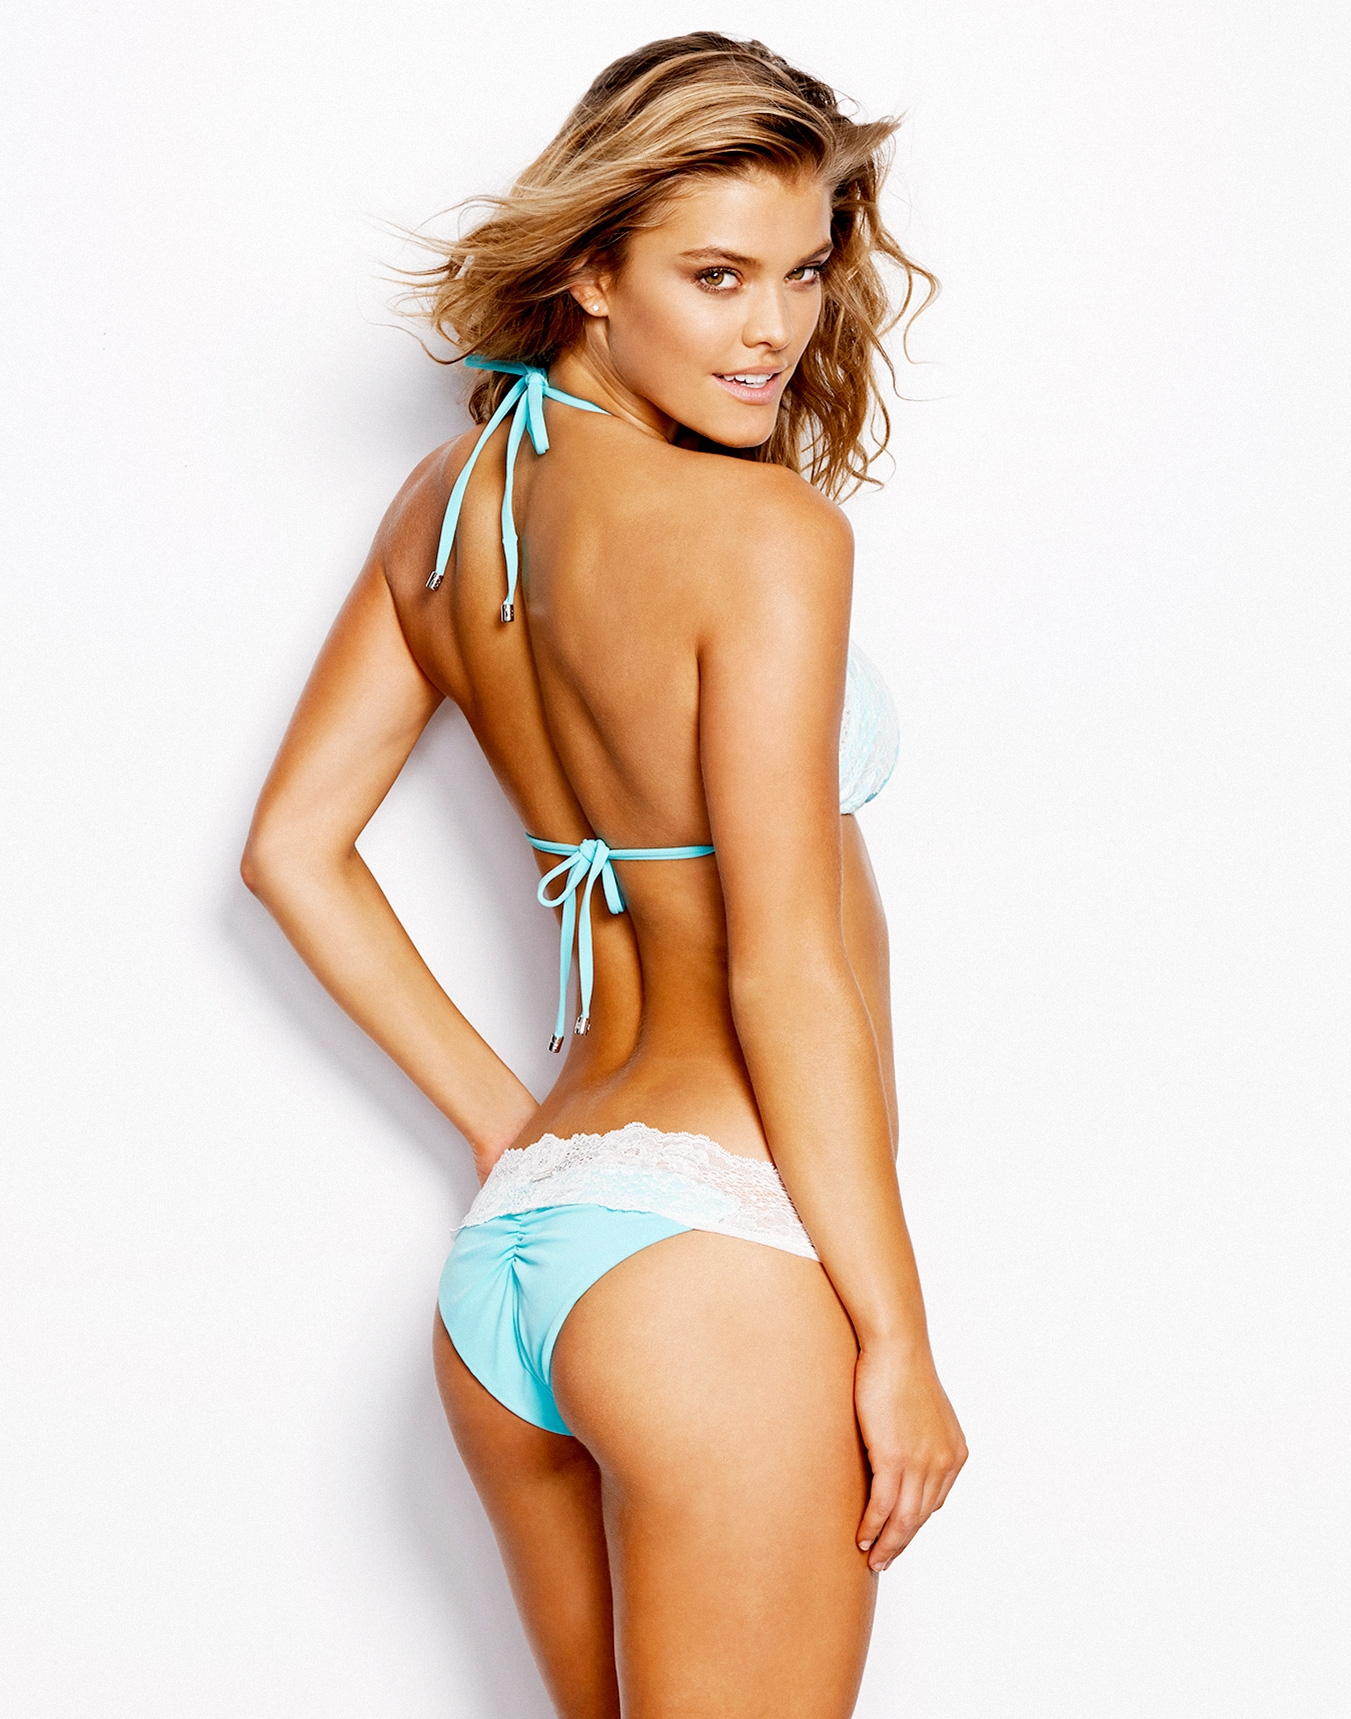 nina-agdal-beach-bunny-lingerie-october-2014-10